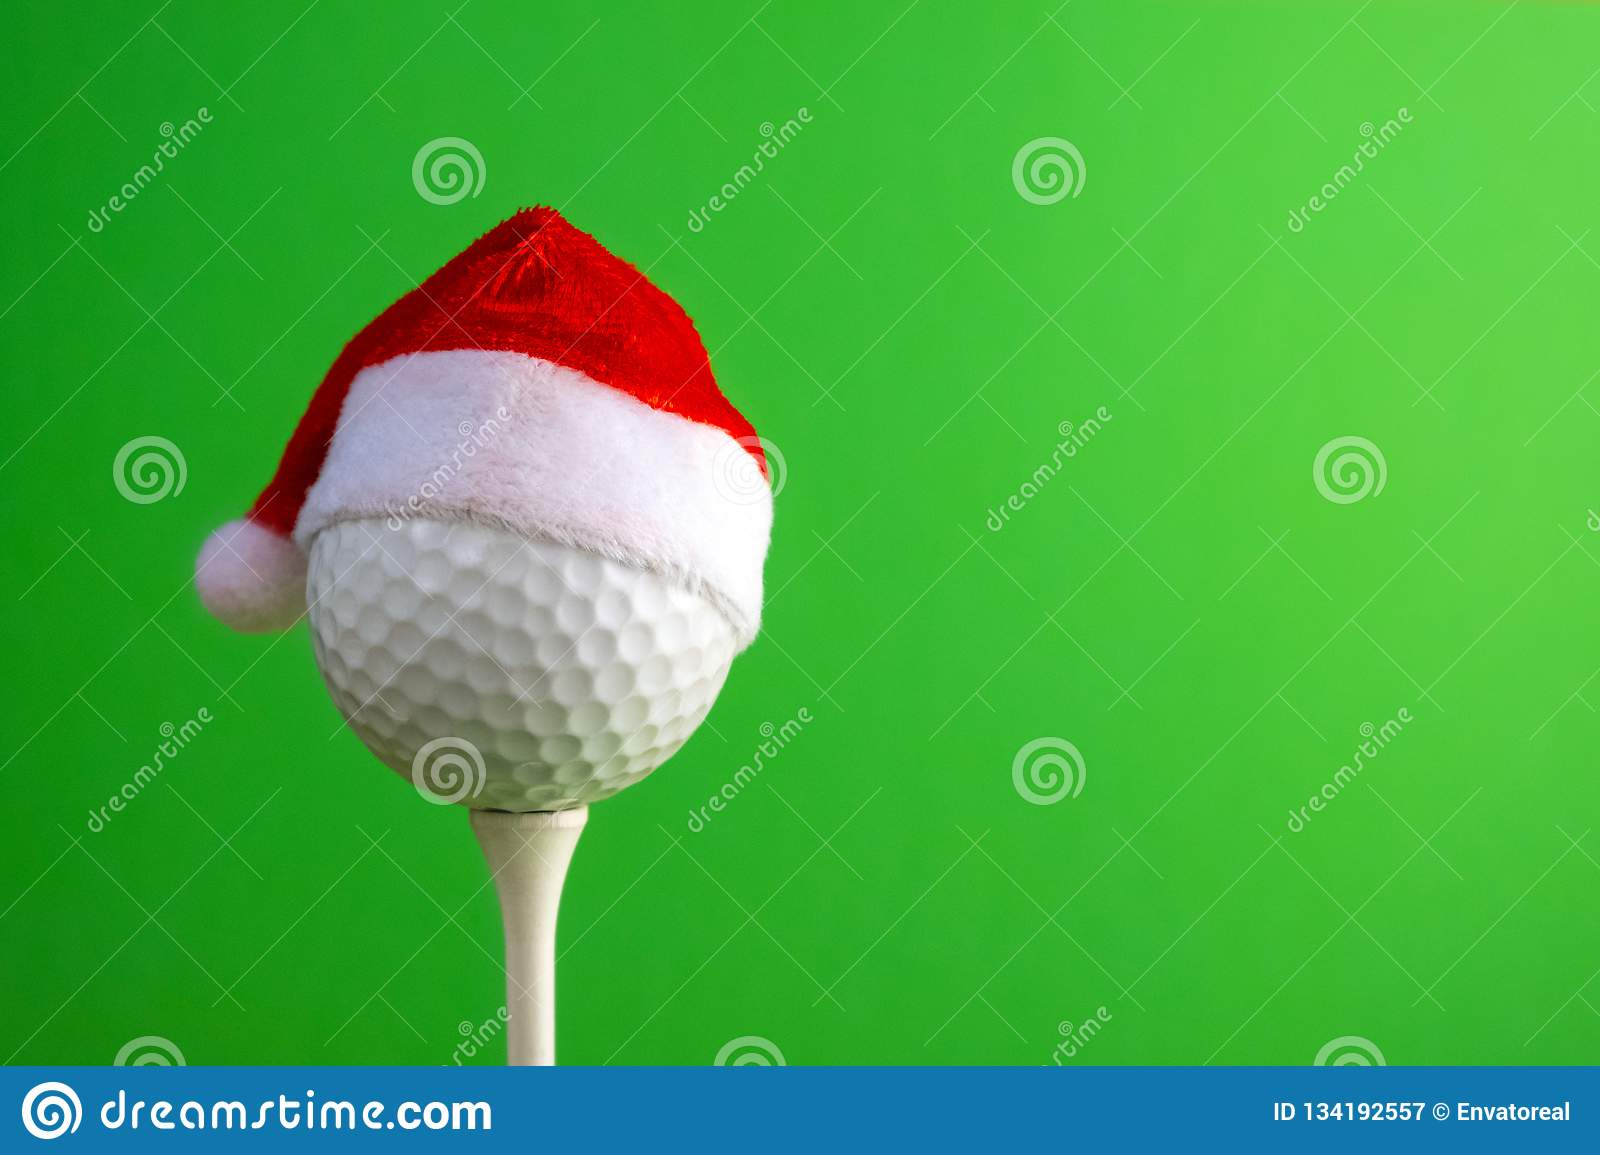 Christmas Sports Background.Sports Concept On The Topic Of Golf Christmas And New Year